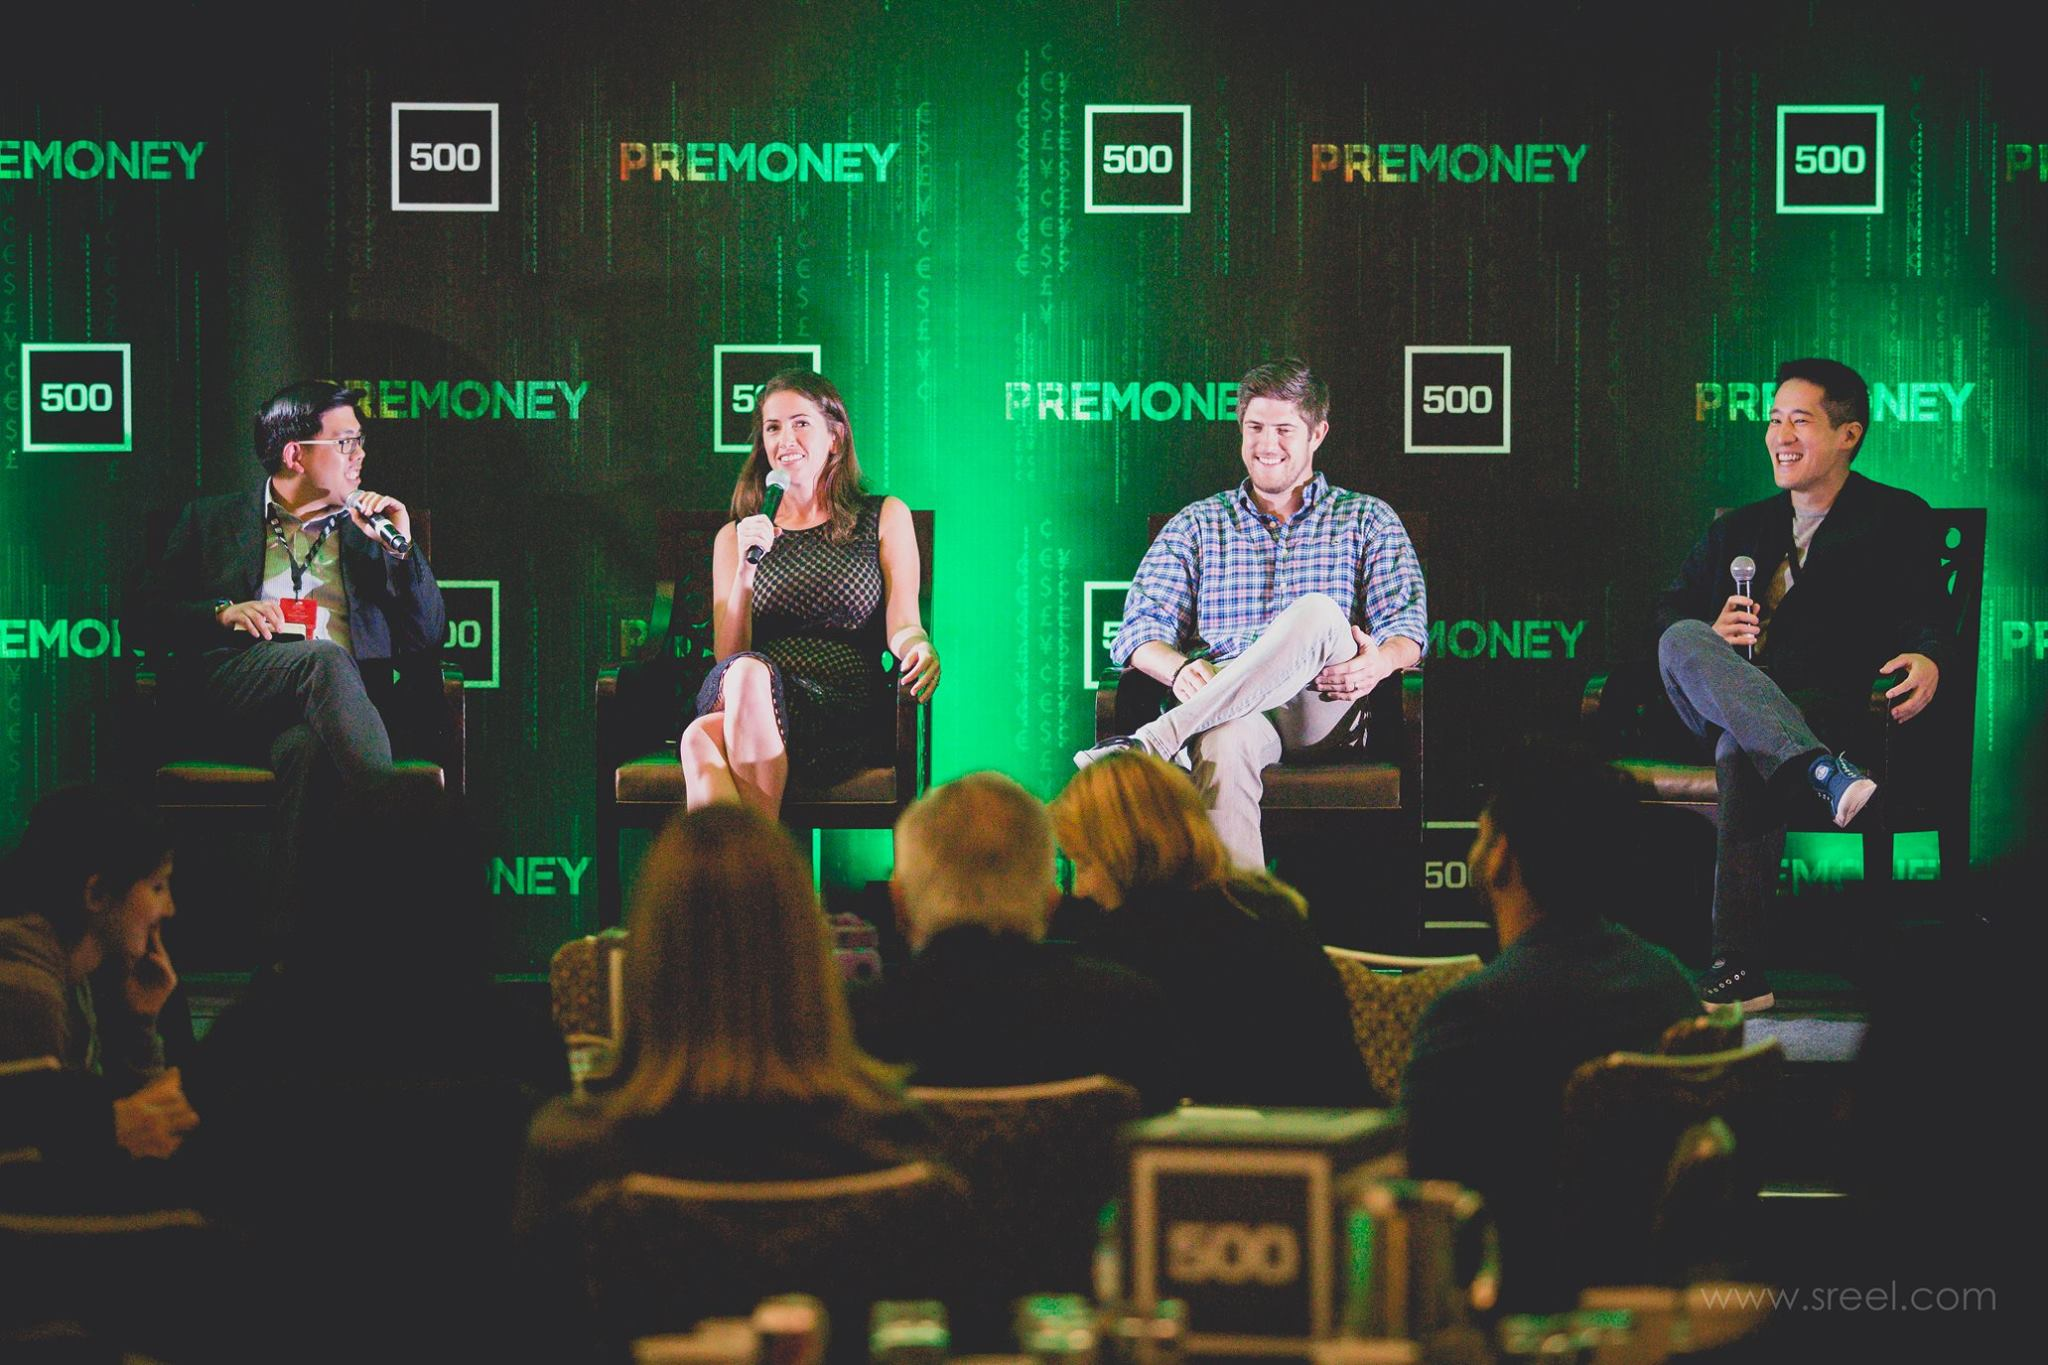 5 Reasons to Attend PreMoney